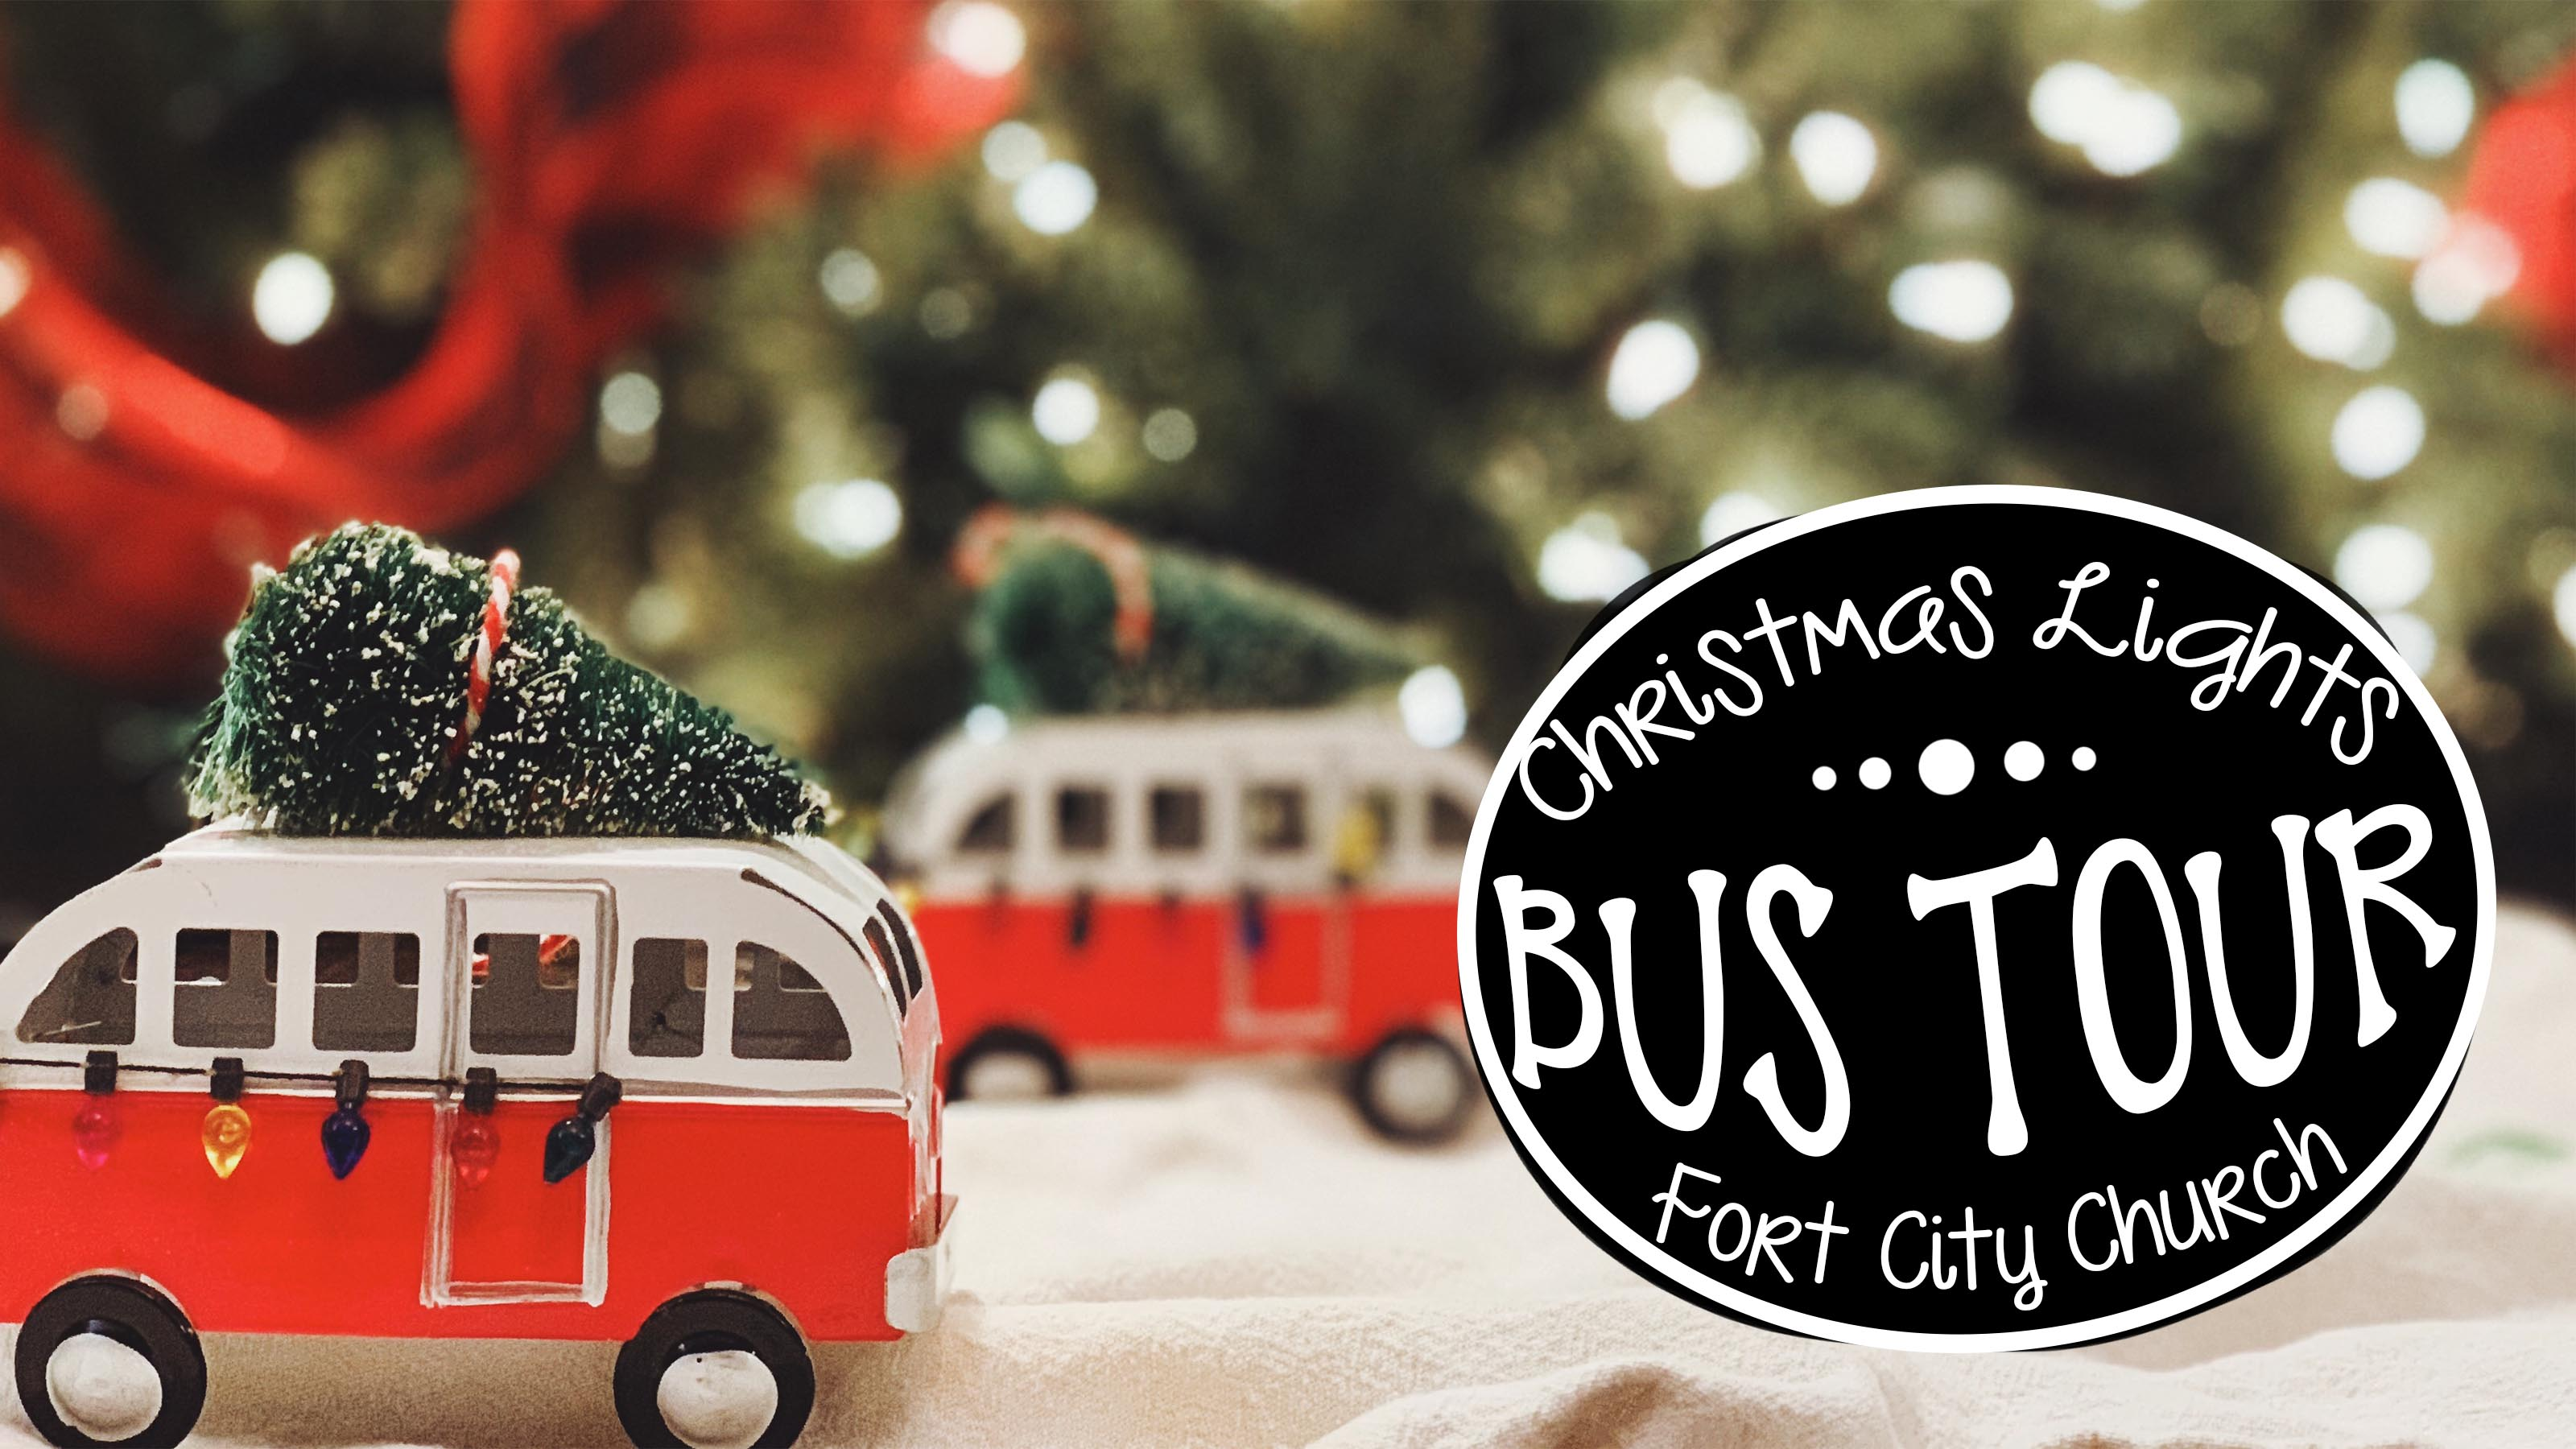 Christmas lights bus tour website